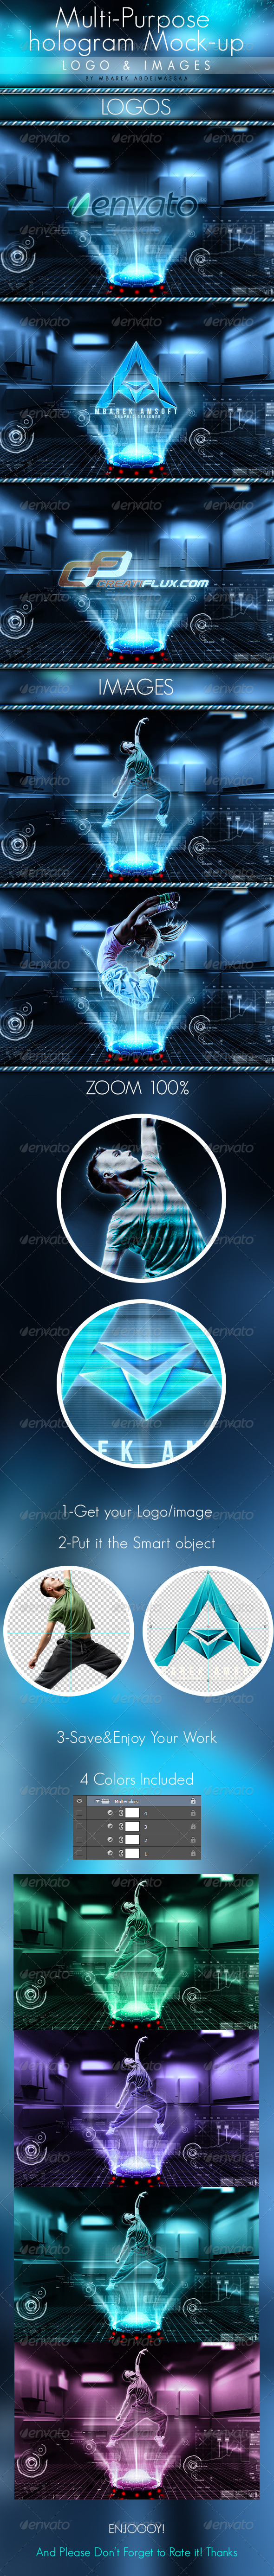 GraphicRiver Multi-purpose hologram mock-up 6348611